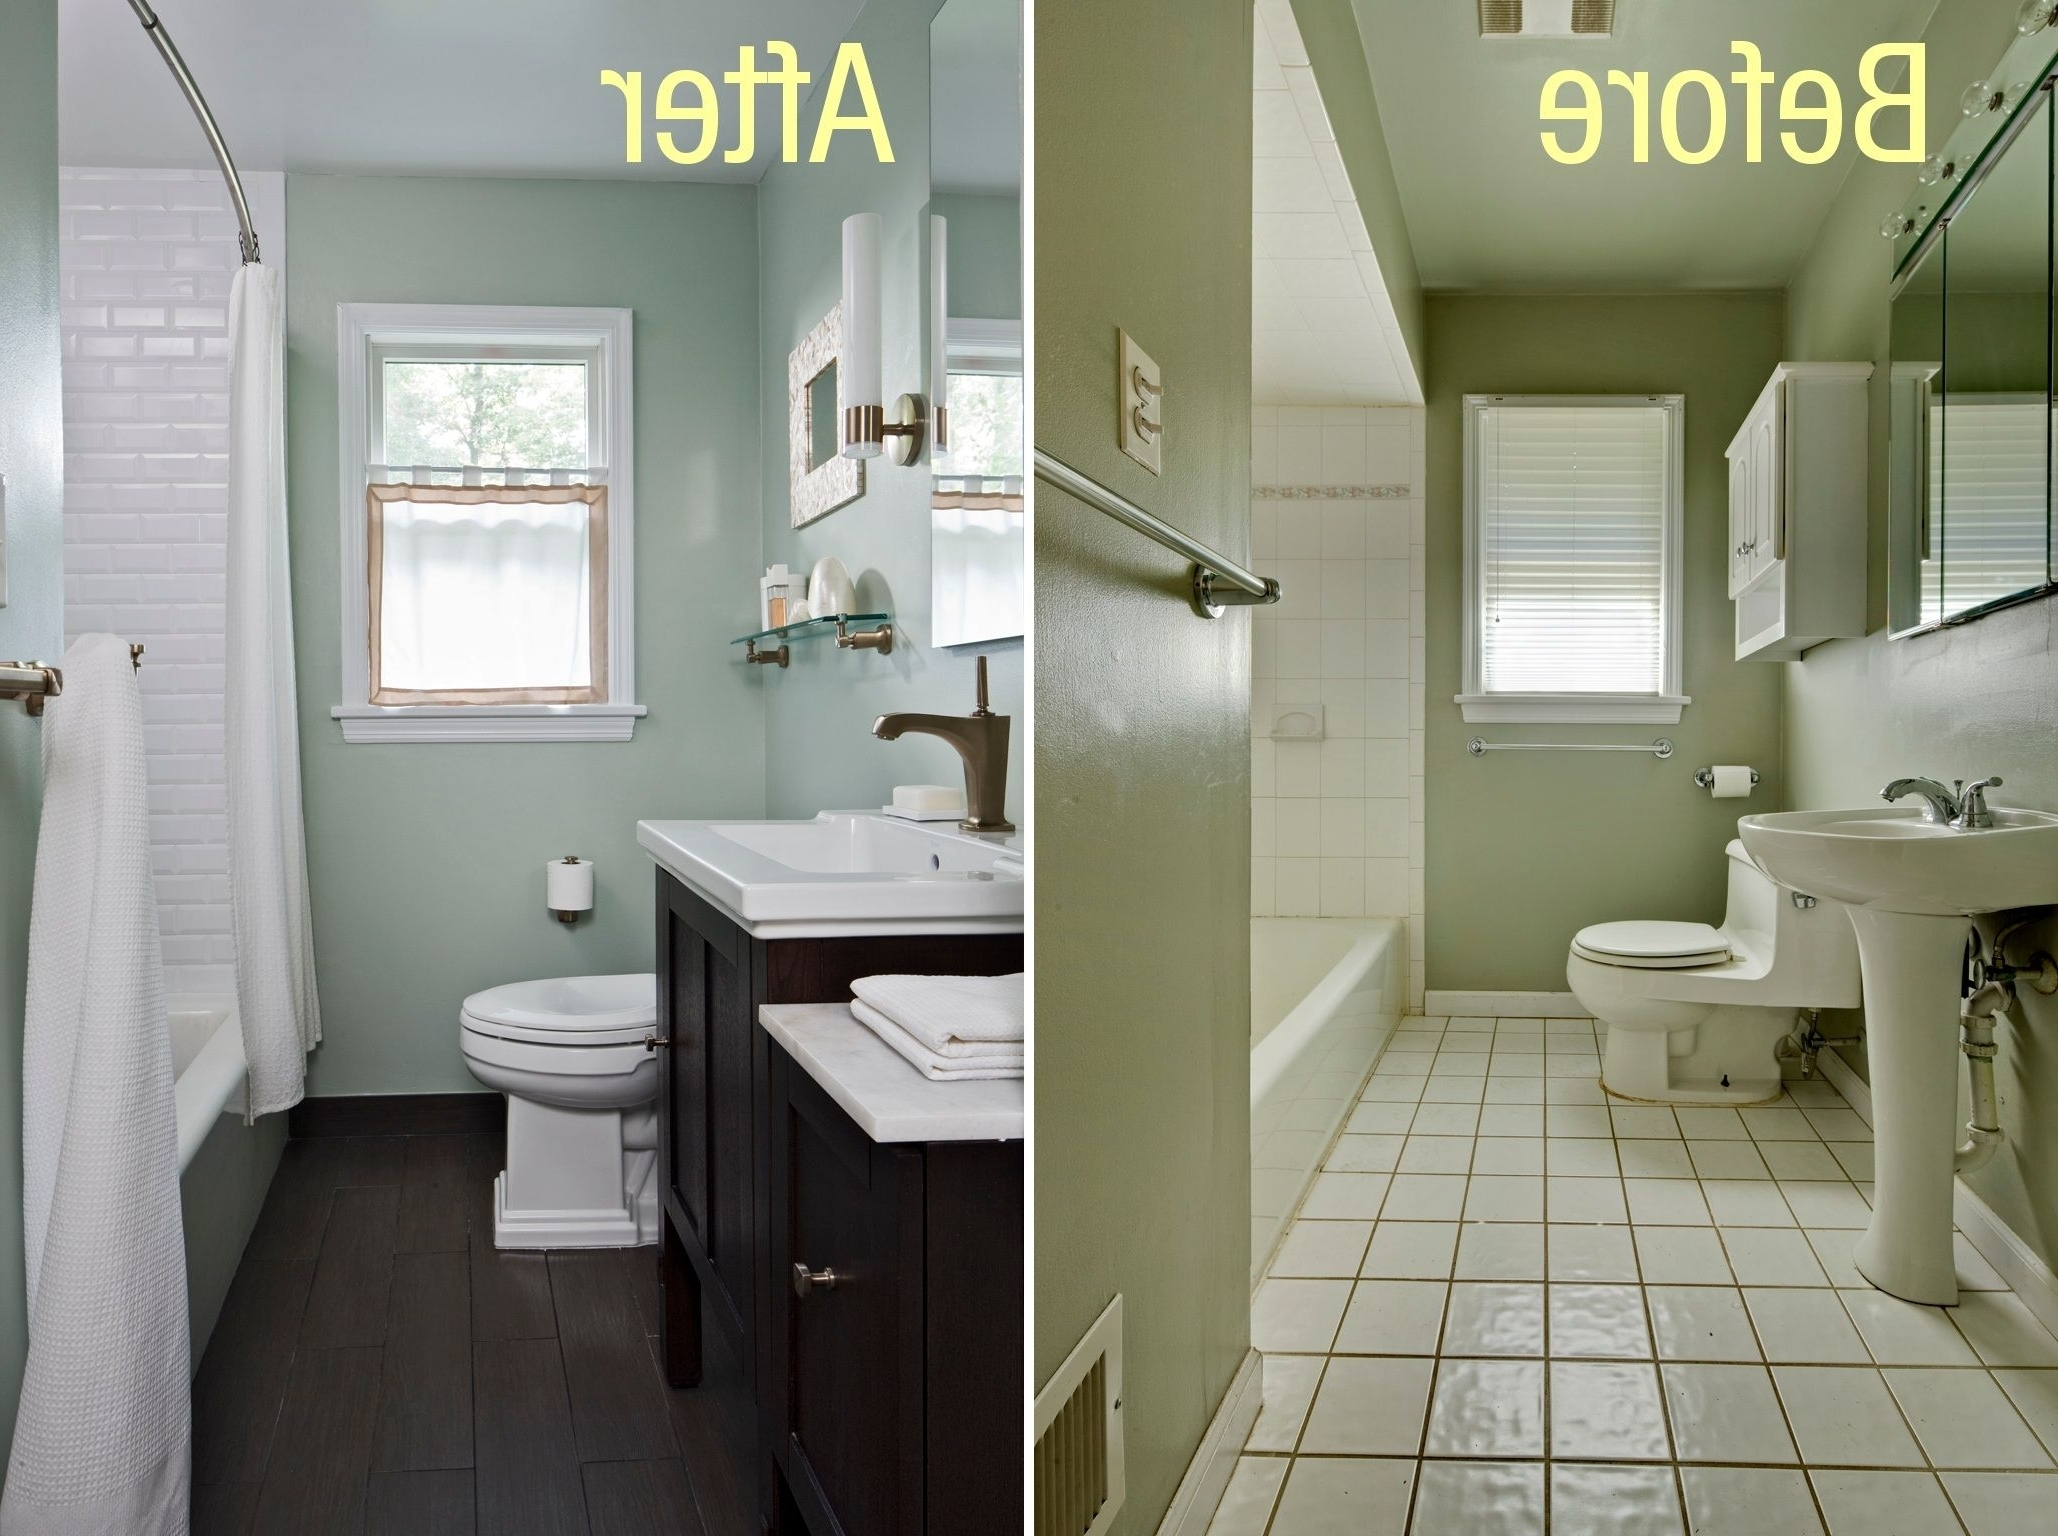 Mobile Home Bathroom Remodel Before And After Image Of 40+ Mobile Home Bathroom Renovation Ideas